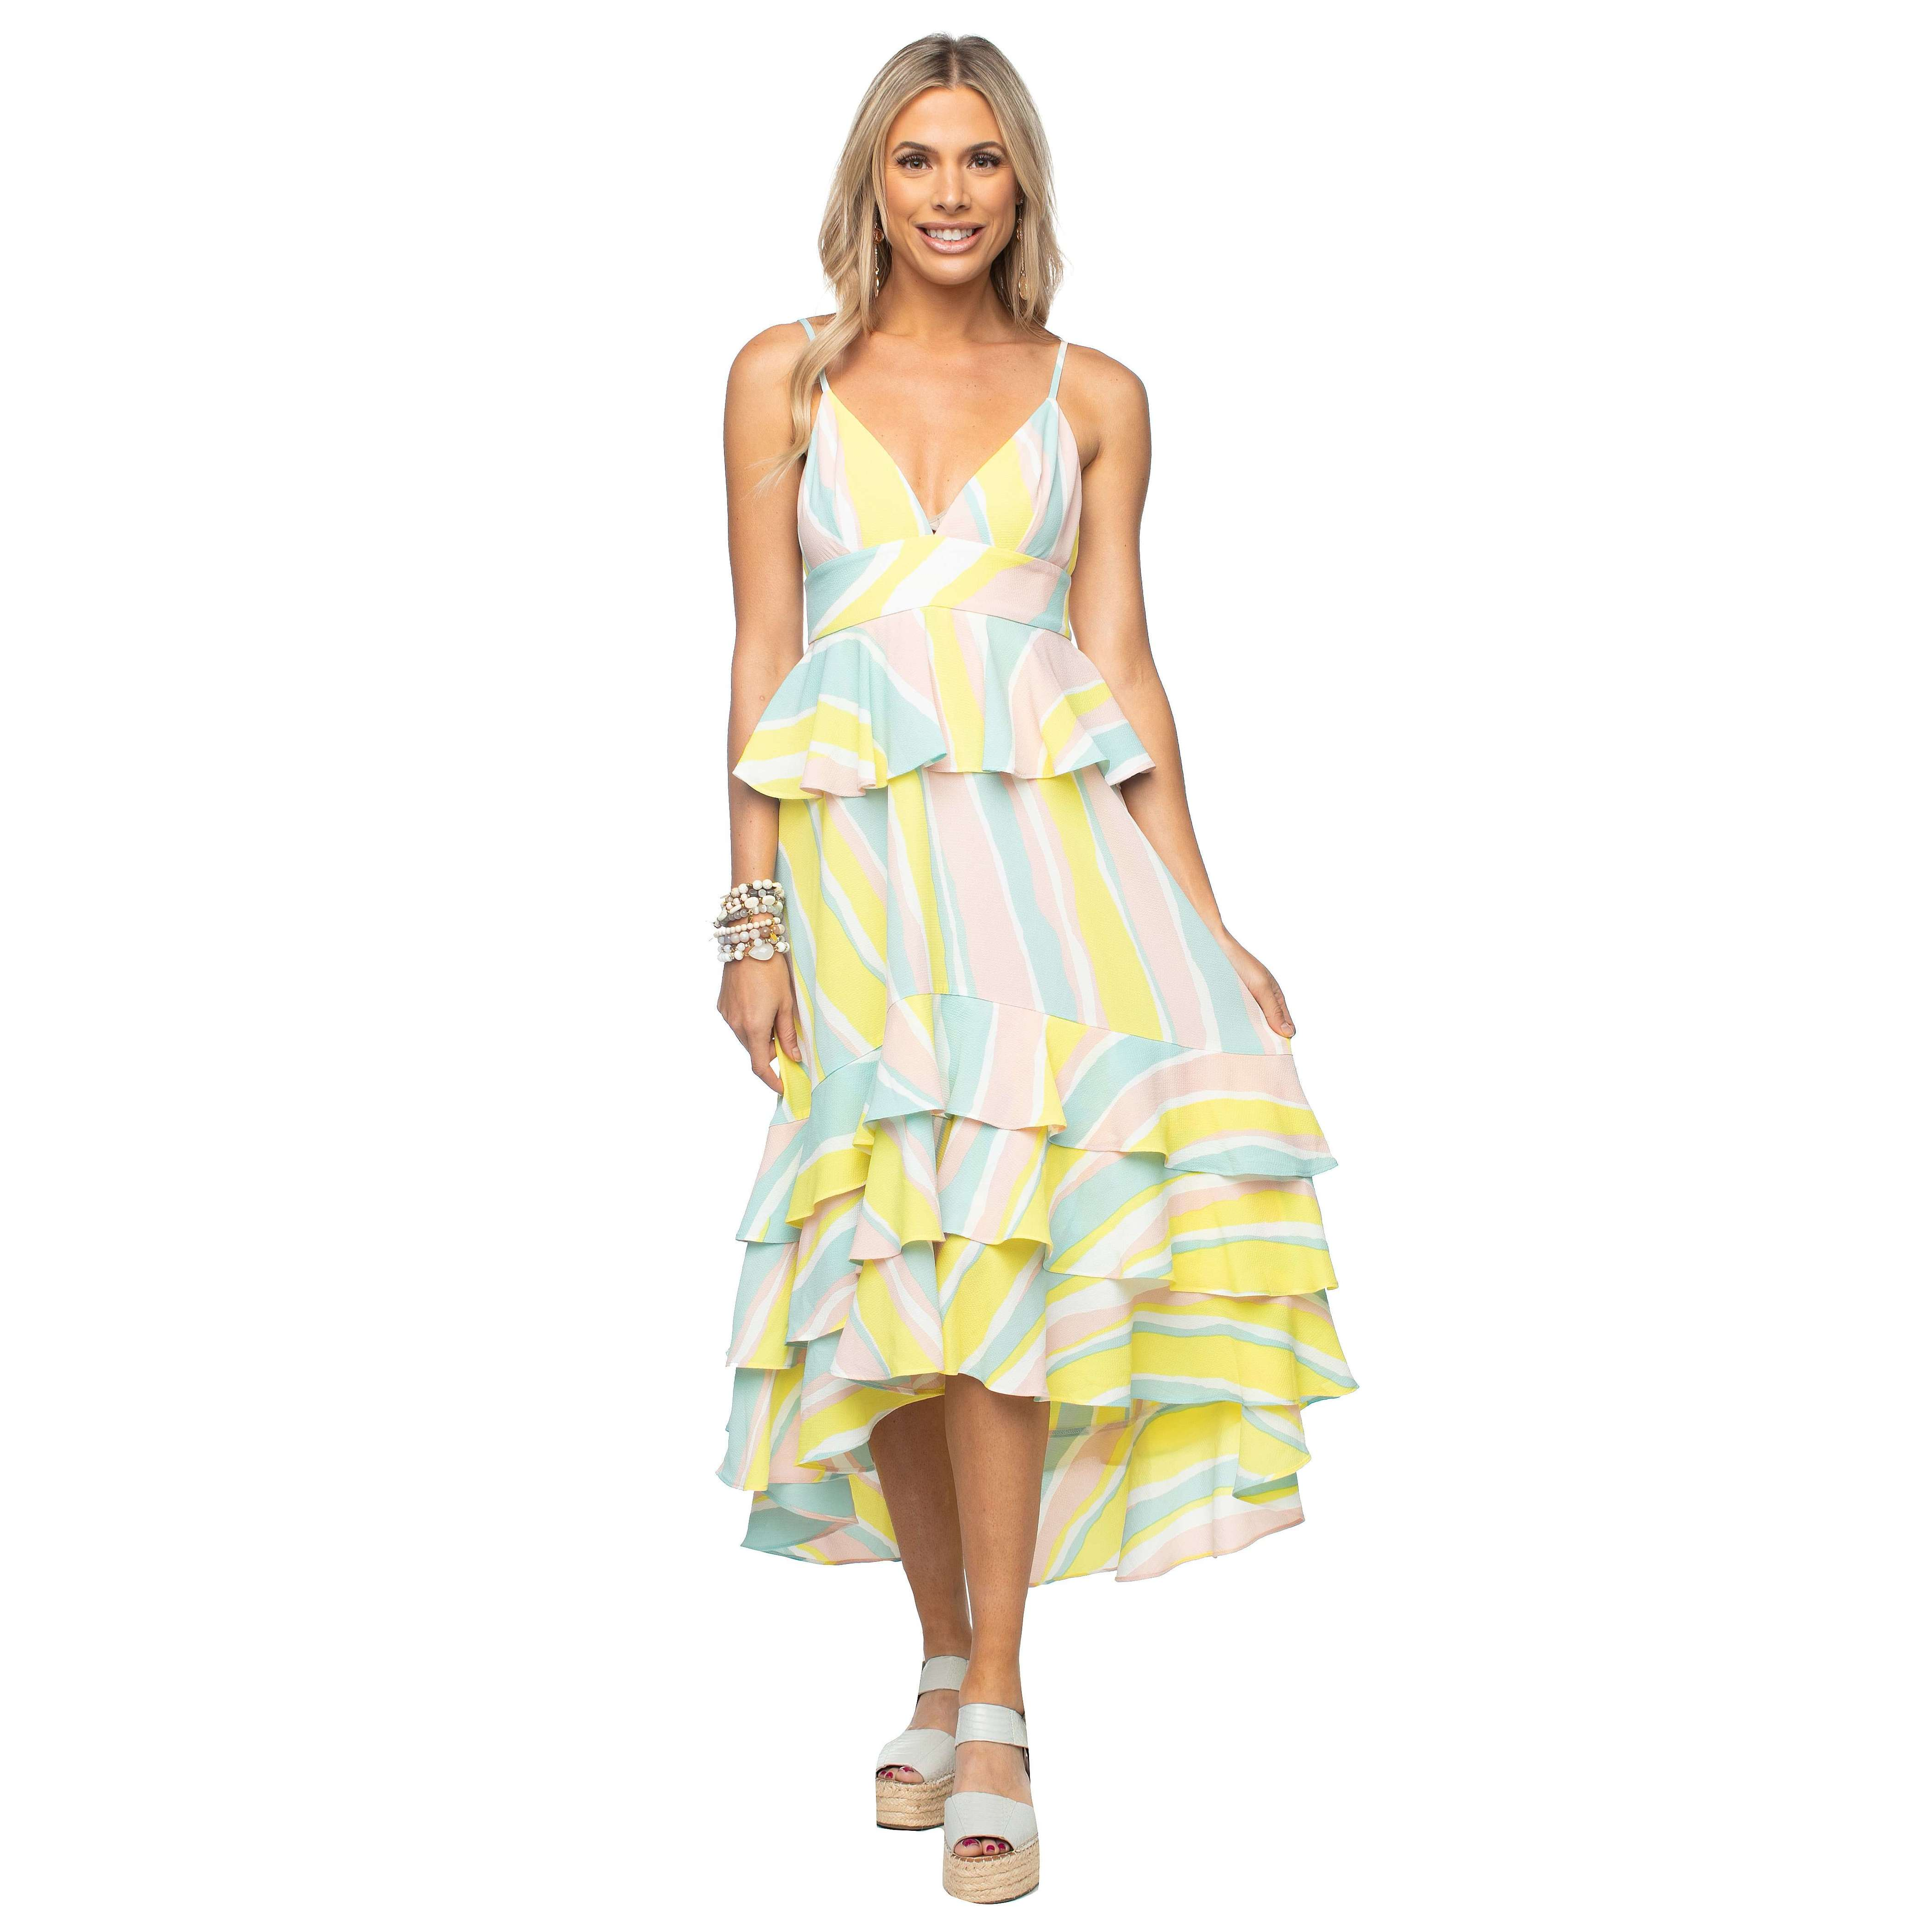 8.28 Boutique:Buddy Love,Buddy Love Georgia Lemonade Tiered Dress,Dress